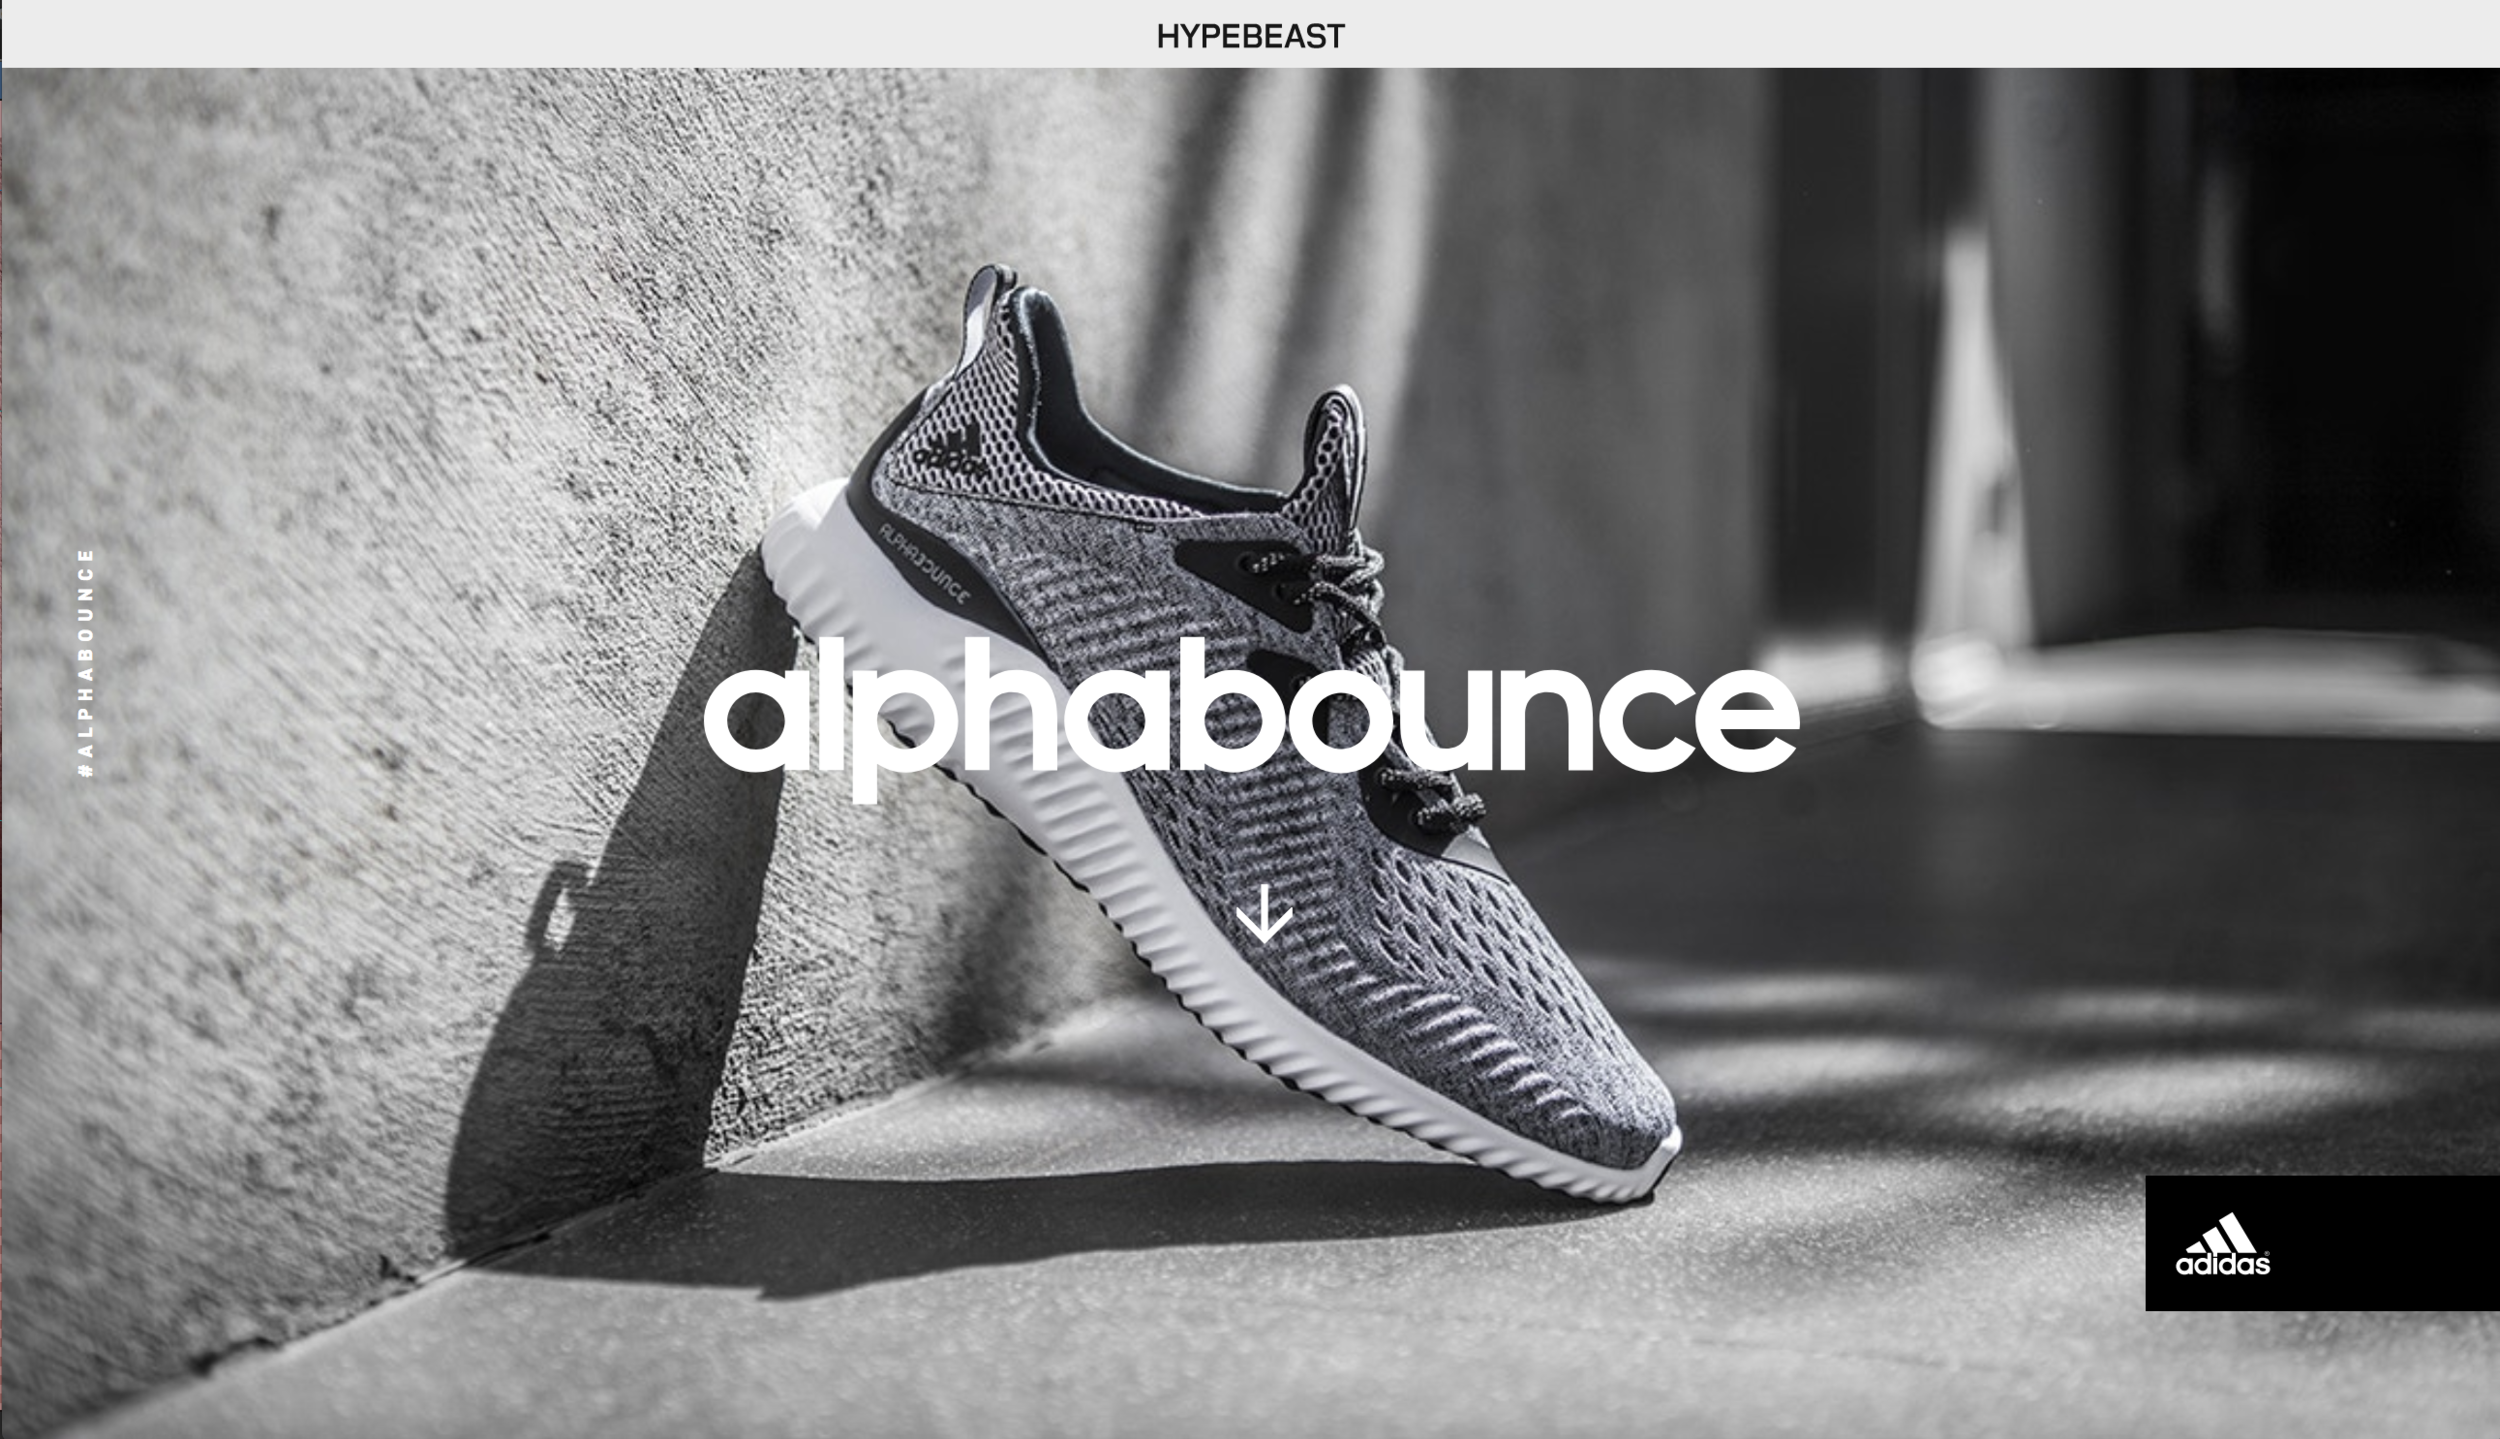 the best attitude af902 c7f7d Video and photography    adidas, HYPEBEAST. Lookbook creative concept,  visual design and prototype development for a single-page parallax scroll